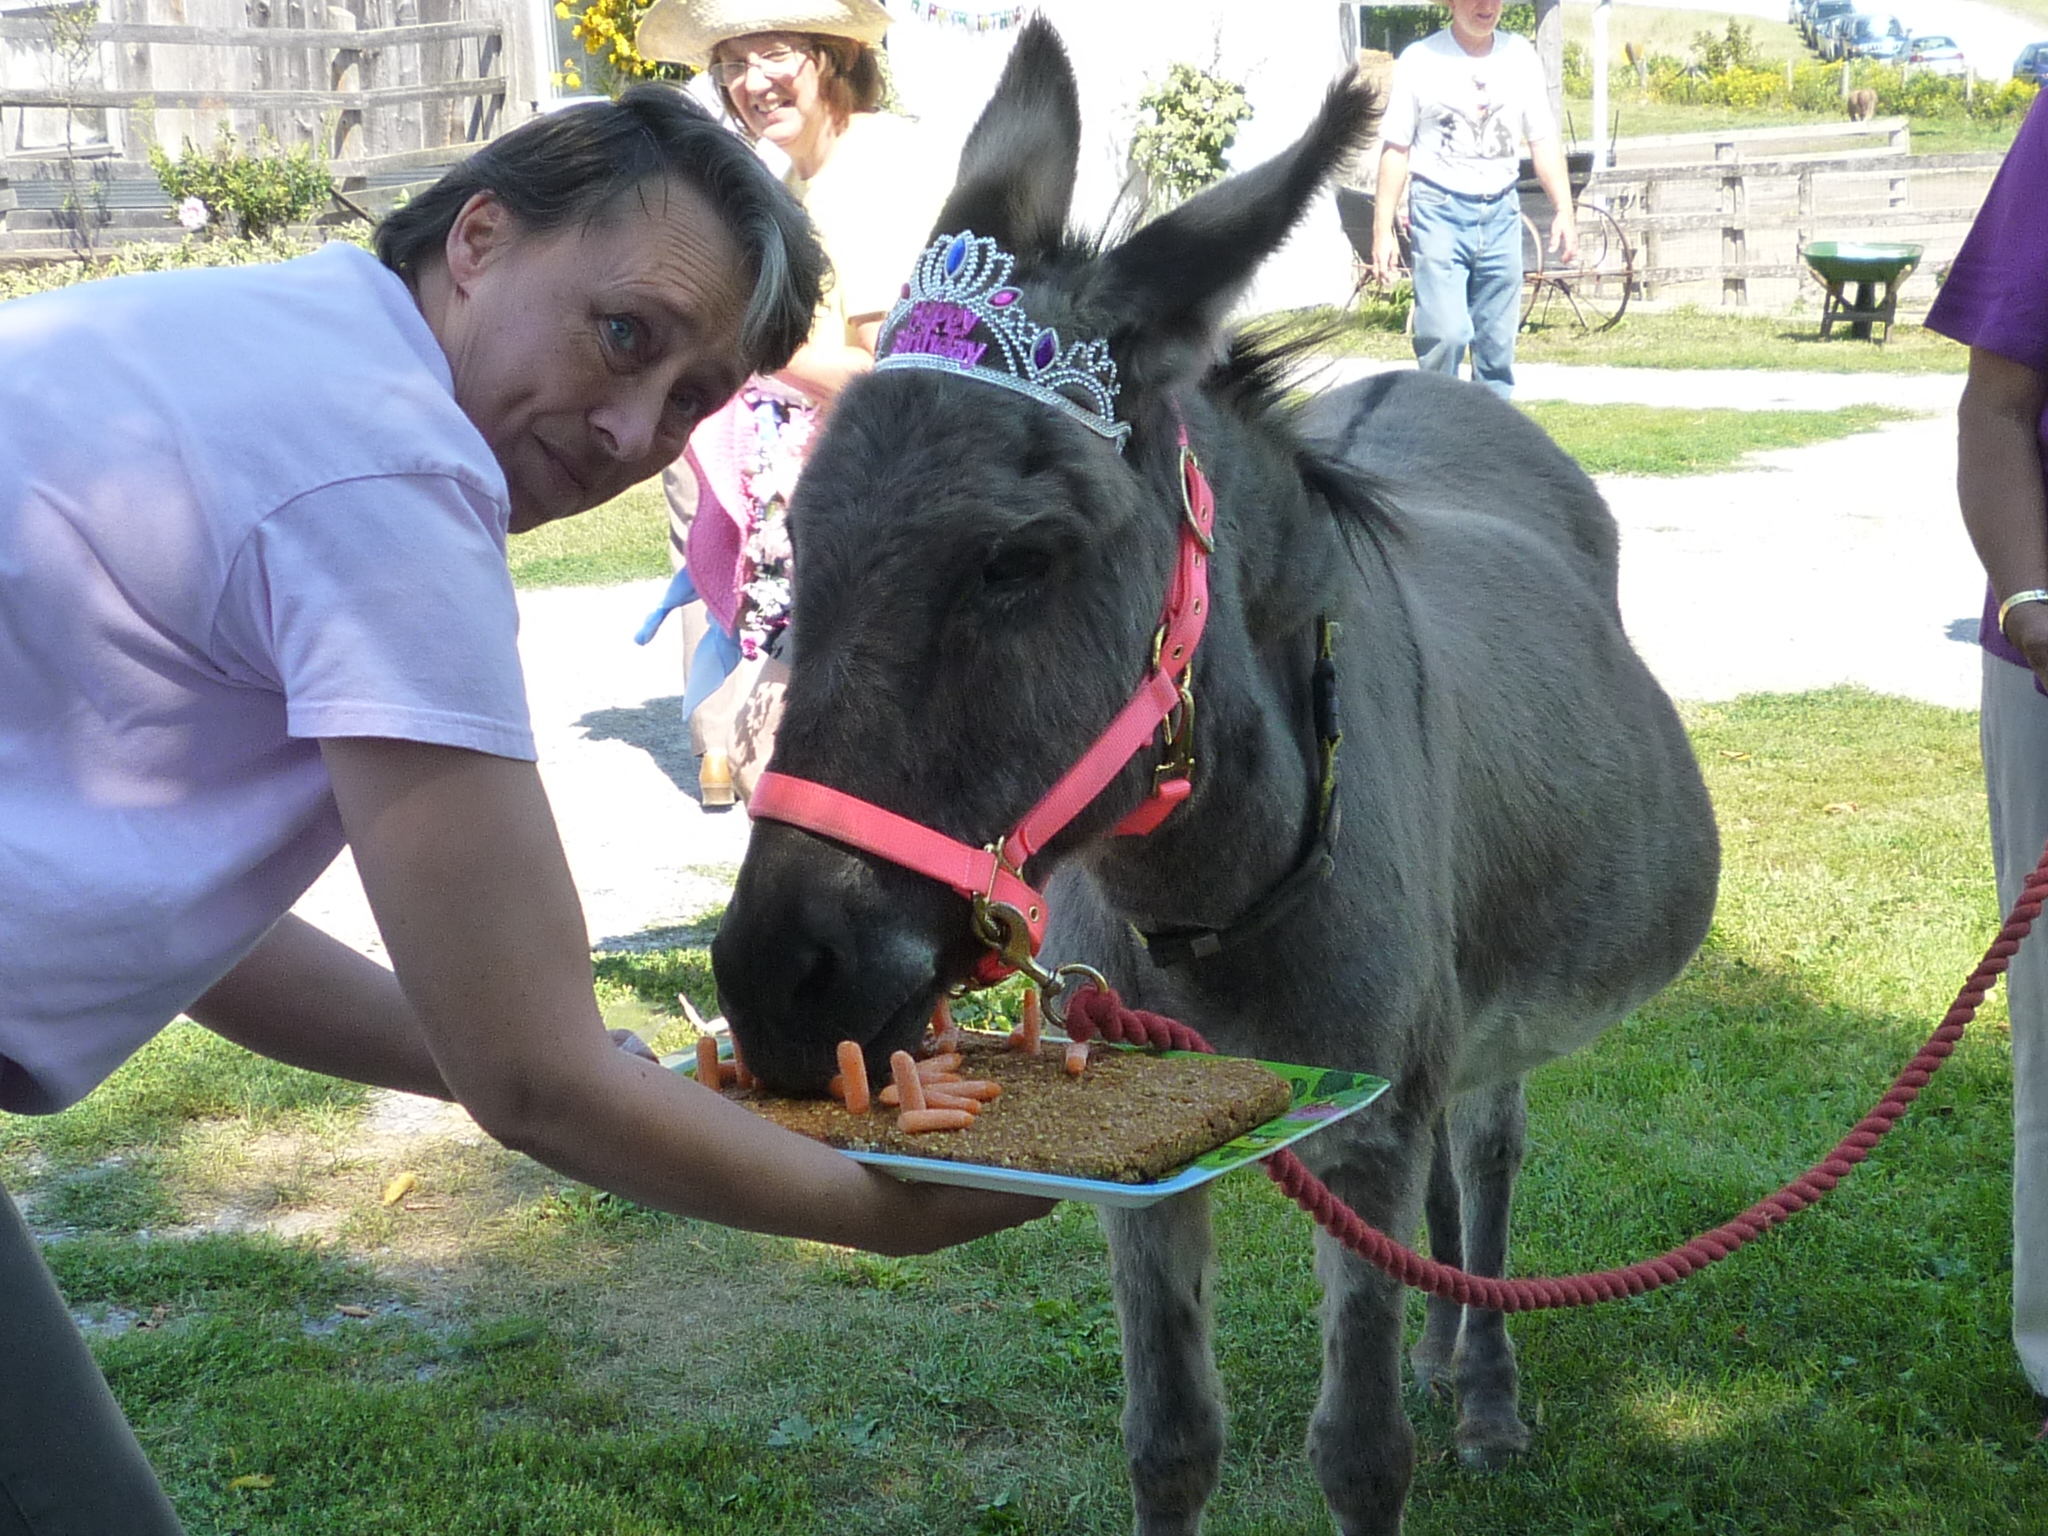 PrimRose munching on her carrot cake at her birthday party